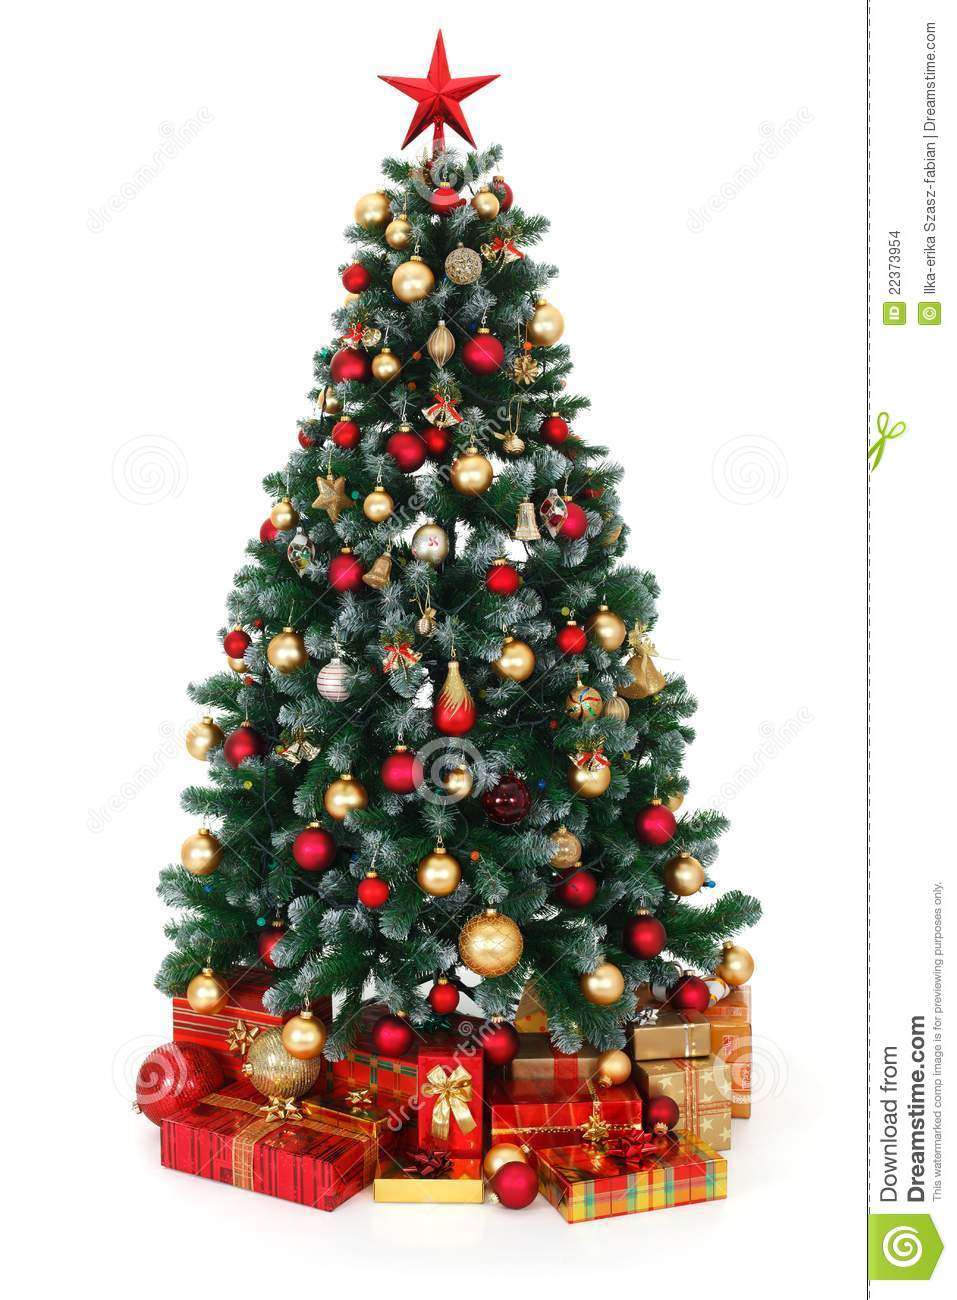 green decorated christmas tree and presents - Red And Green Christmas Tree Decorations